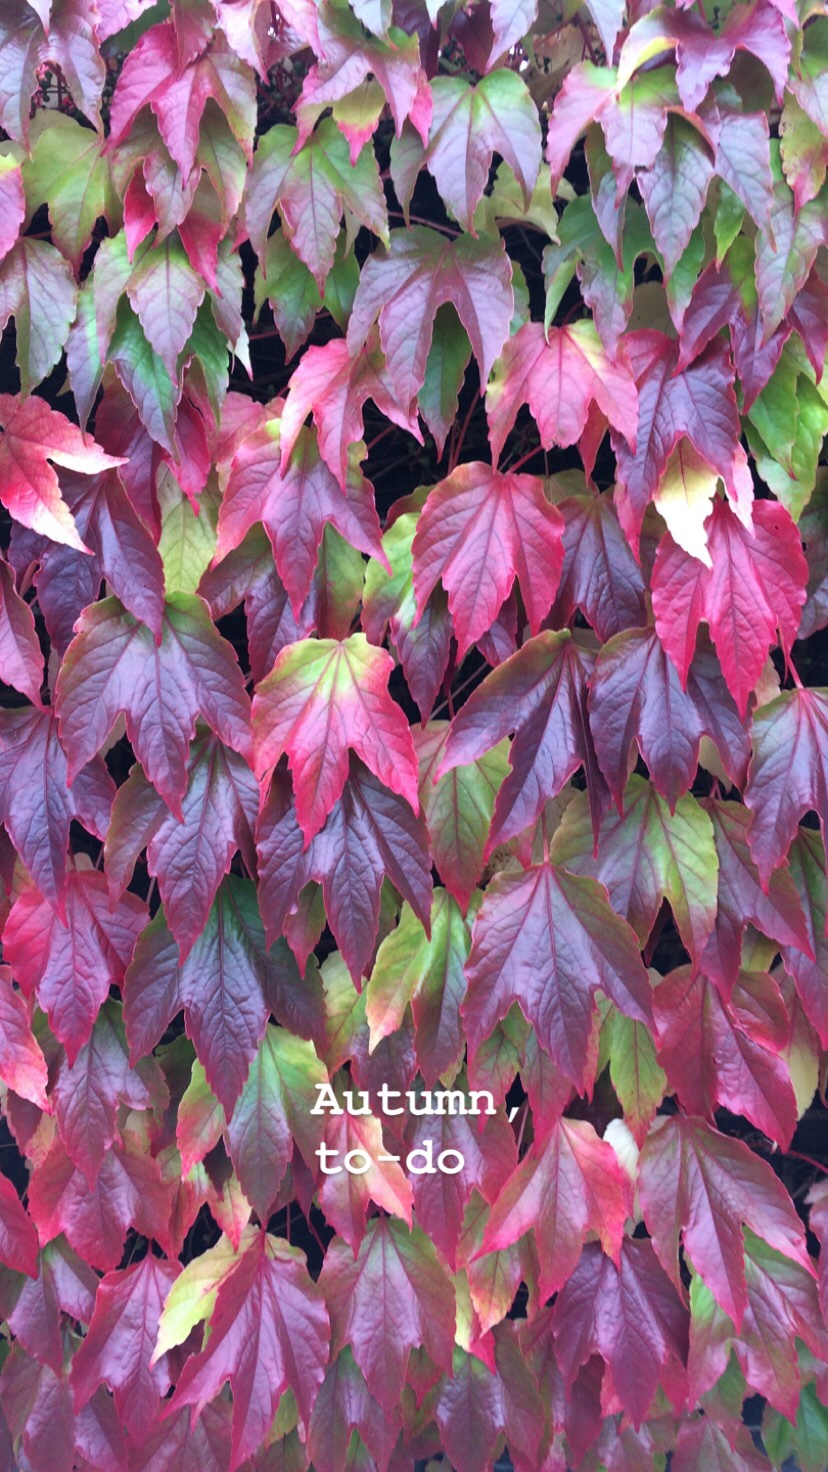 Autumn to-do bucket list